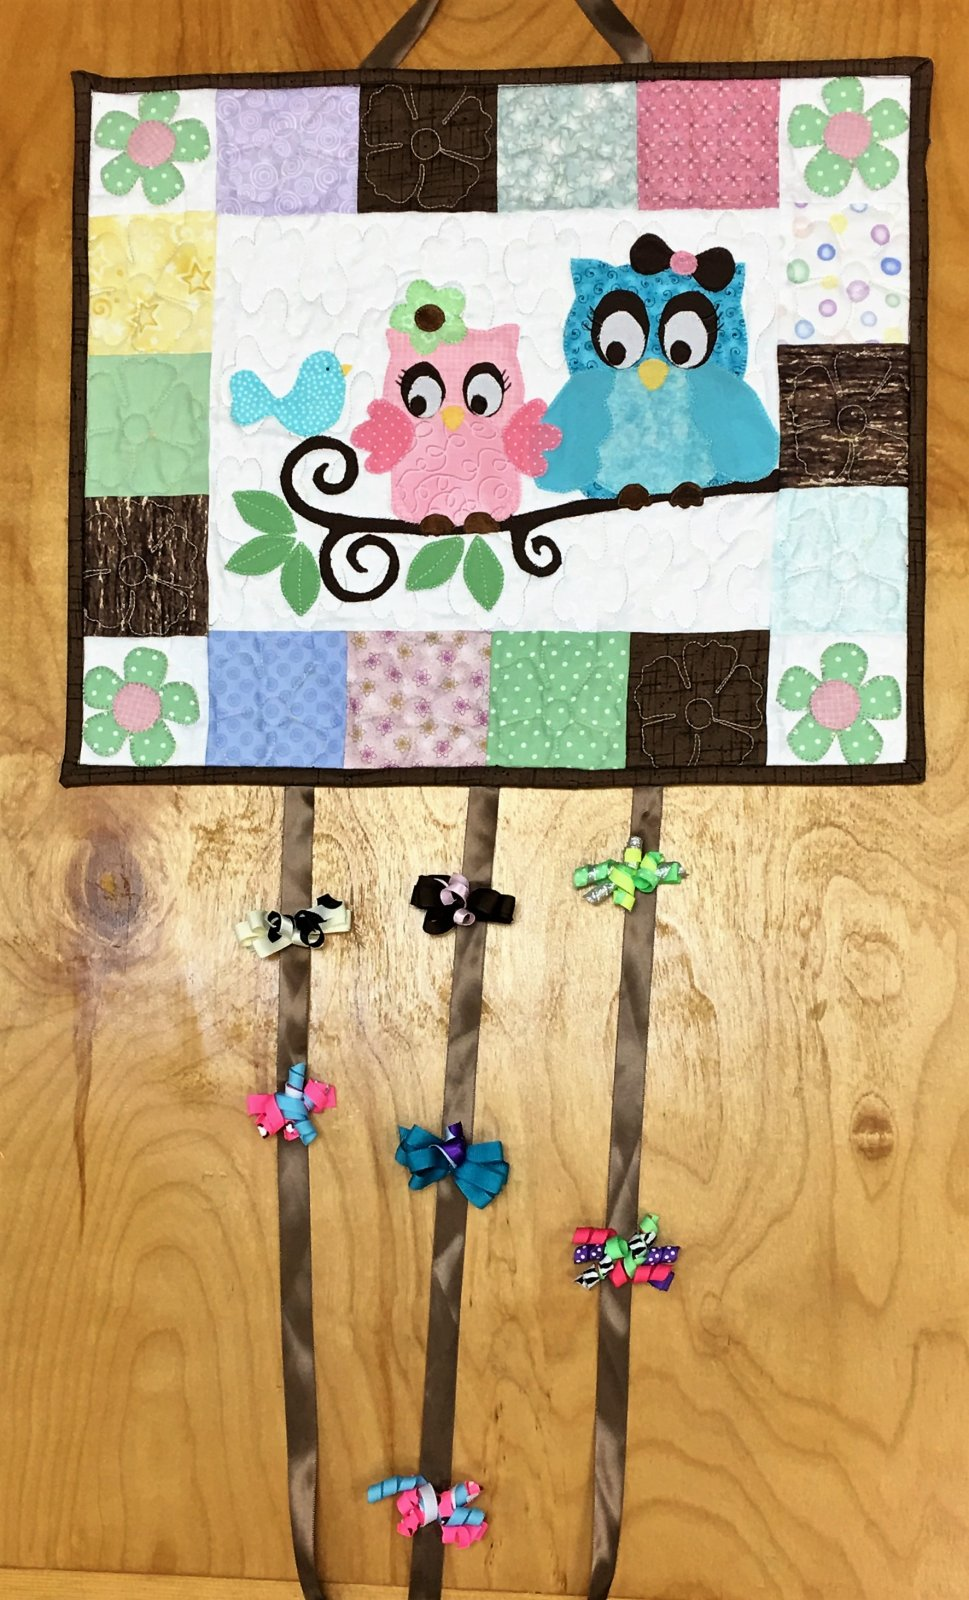 Little Owls, Barrett Holder - Finished Wall Hanging Quilt